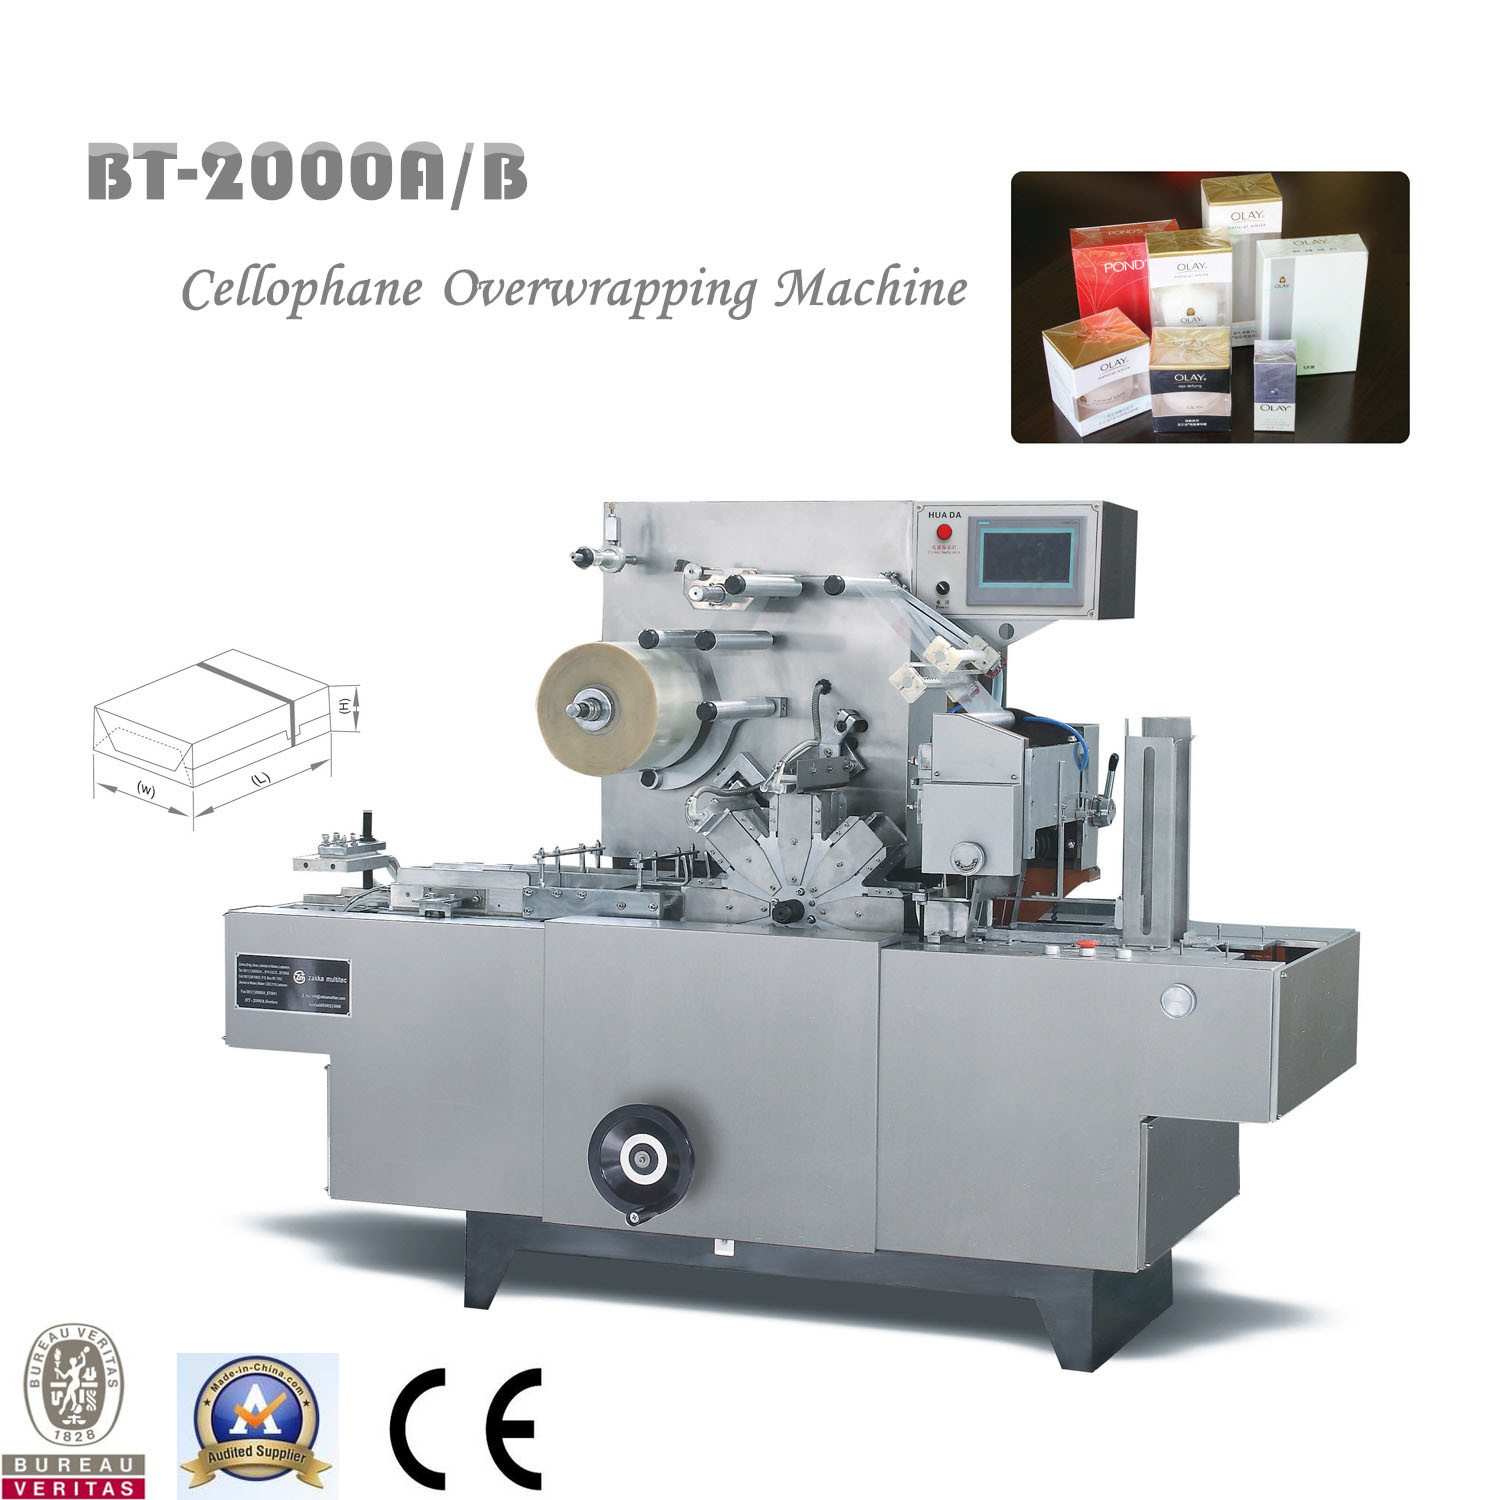 Bt-2000A/B Cellophane 3D Overwrapping Machine